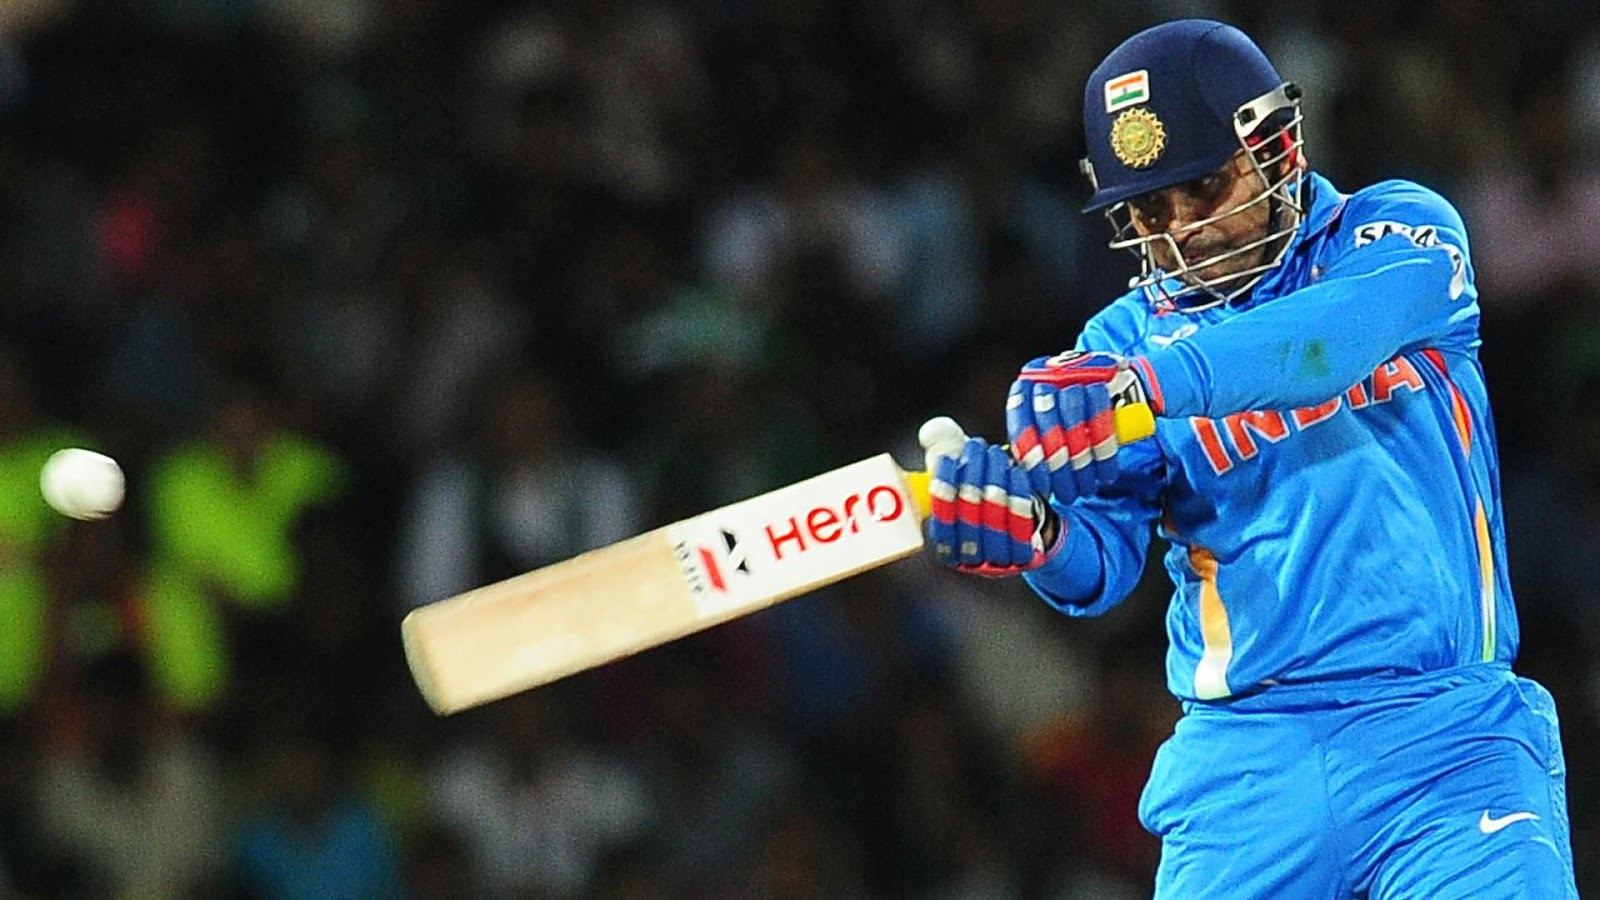 Hd wallpaper cricket - Indian Cricket Players Virender Sehwag Hd Wallpapers Free Download